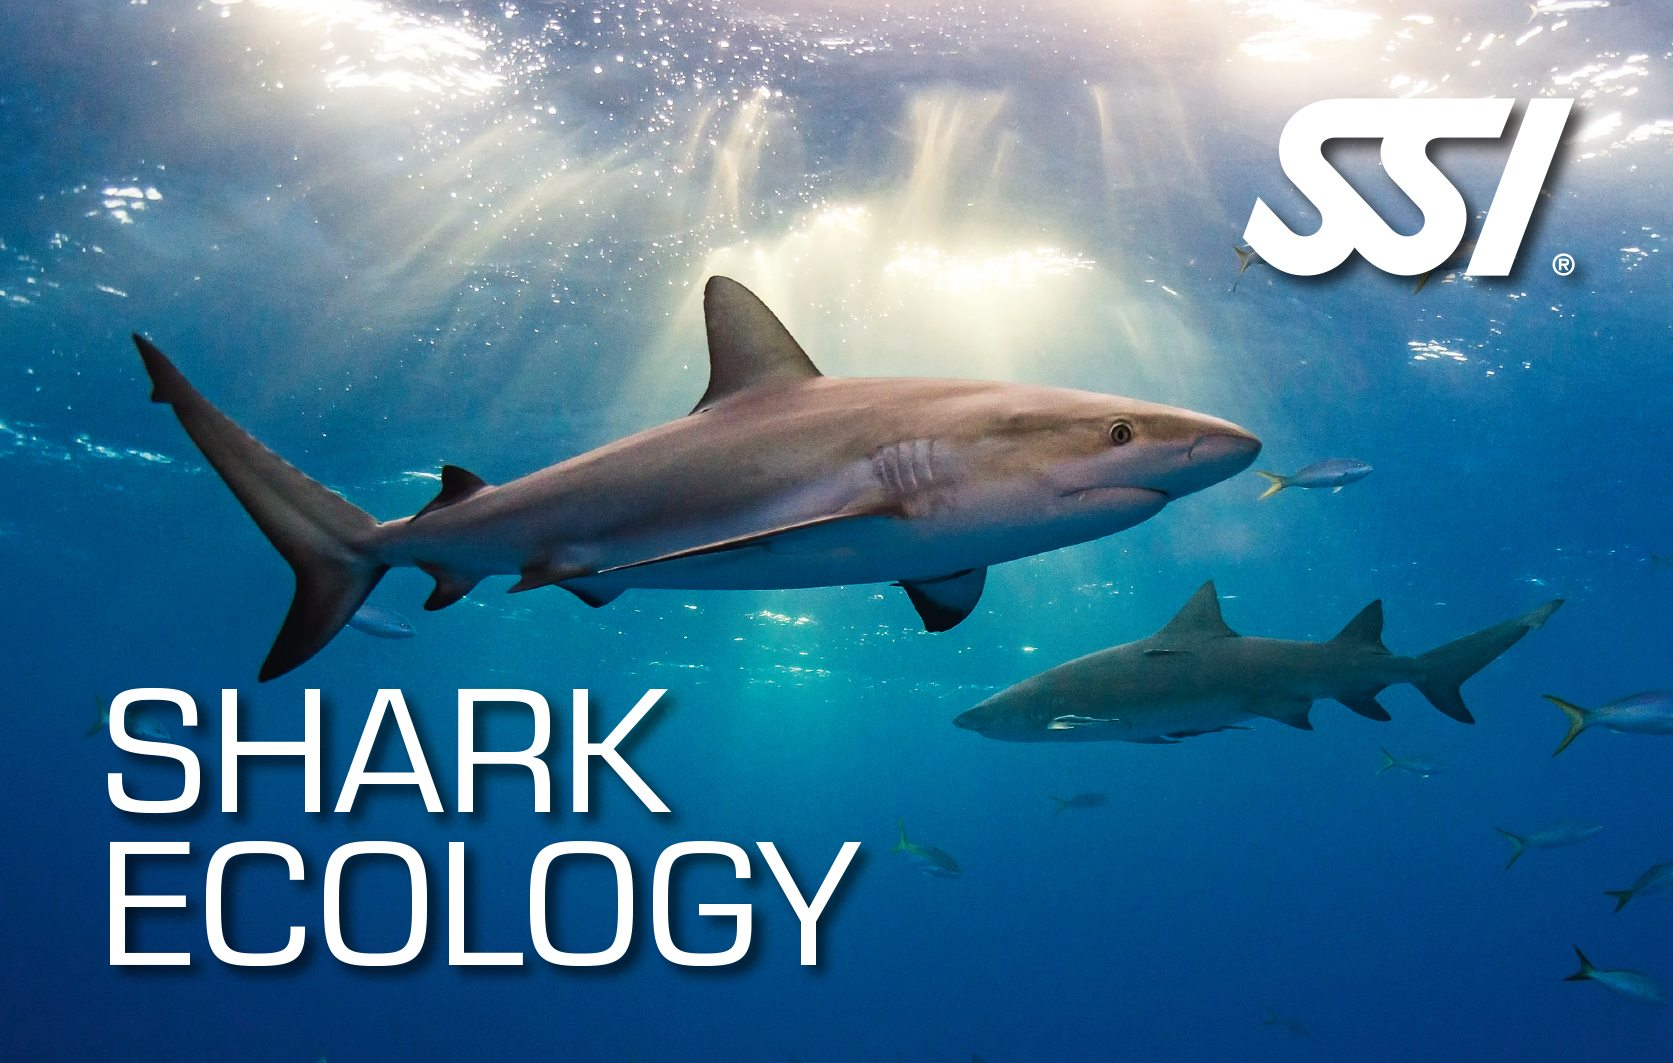 SSI Shark Ecology | SSI Shark Ecology Course | Shark Ecology | Specialty Course | Diving Course | Eko Divers